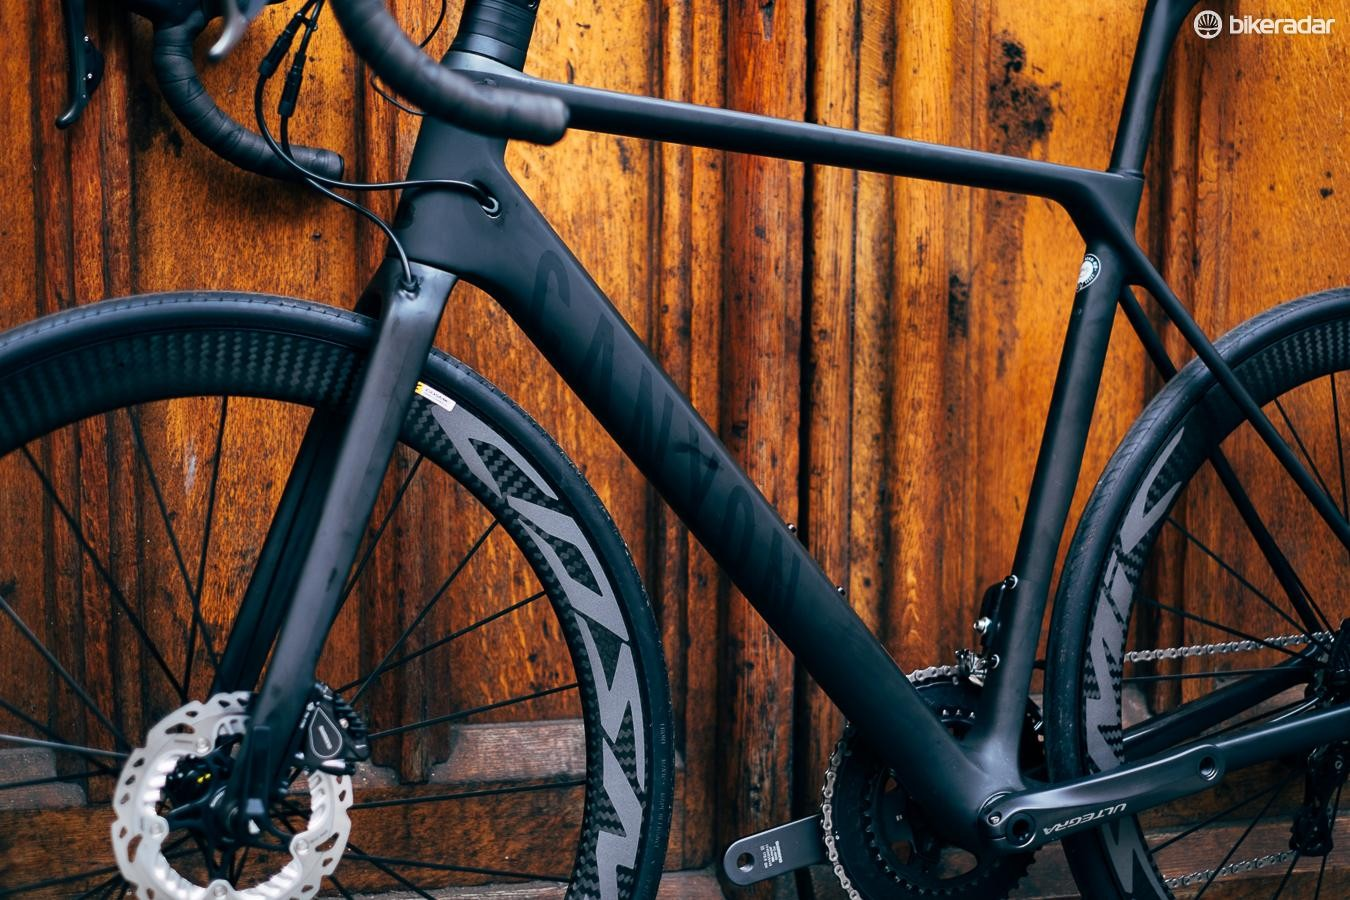 It's a great looking bike that we simply can't wait to ride